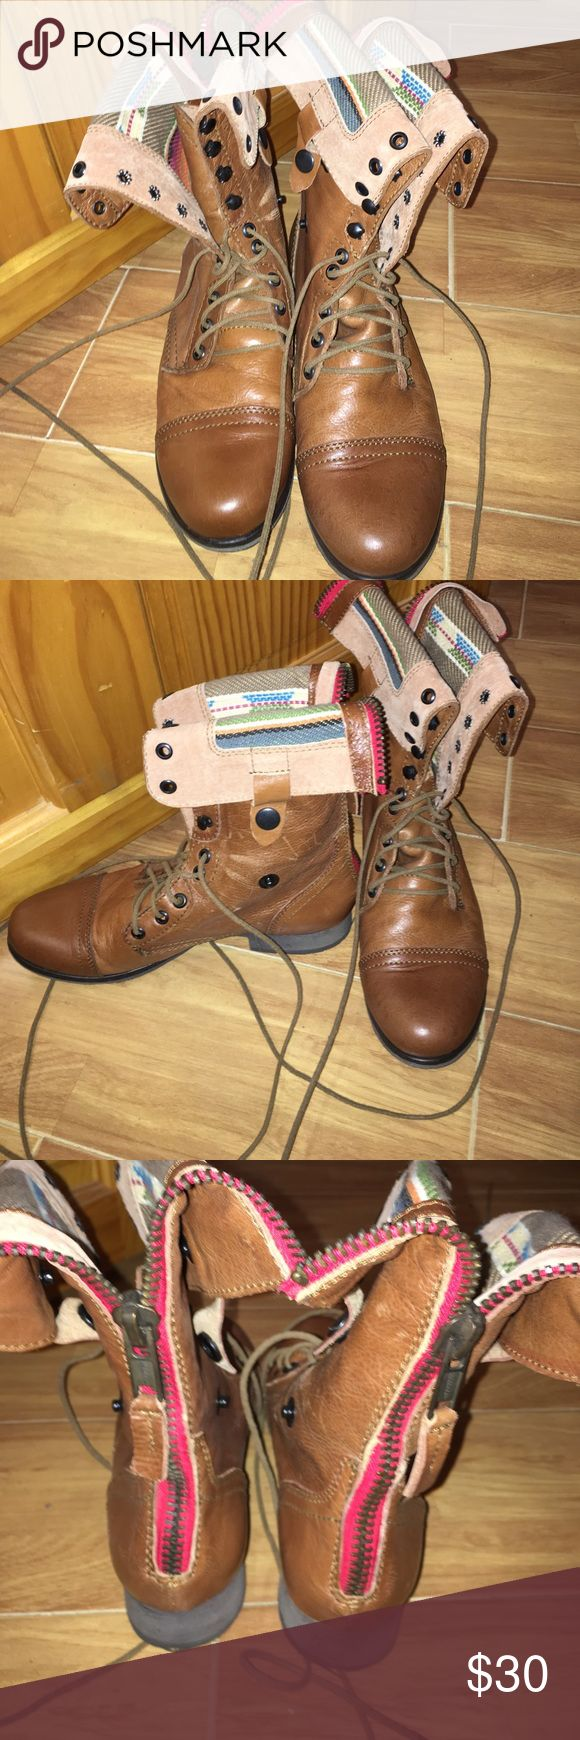 Steve Madden lace up booties. Never worn Steve Madden brown booties. Never worn size 7.5 Steve Madden Shoes